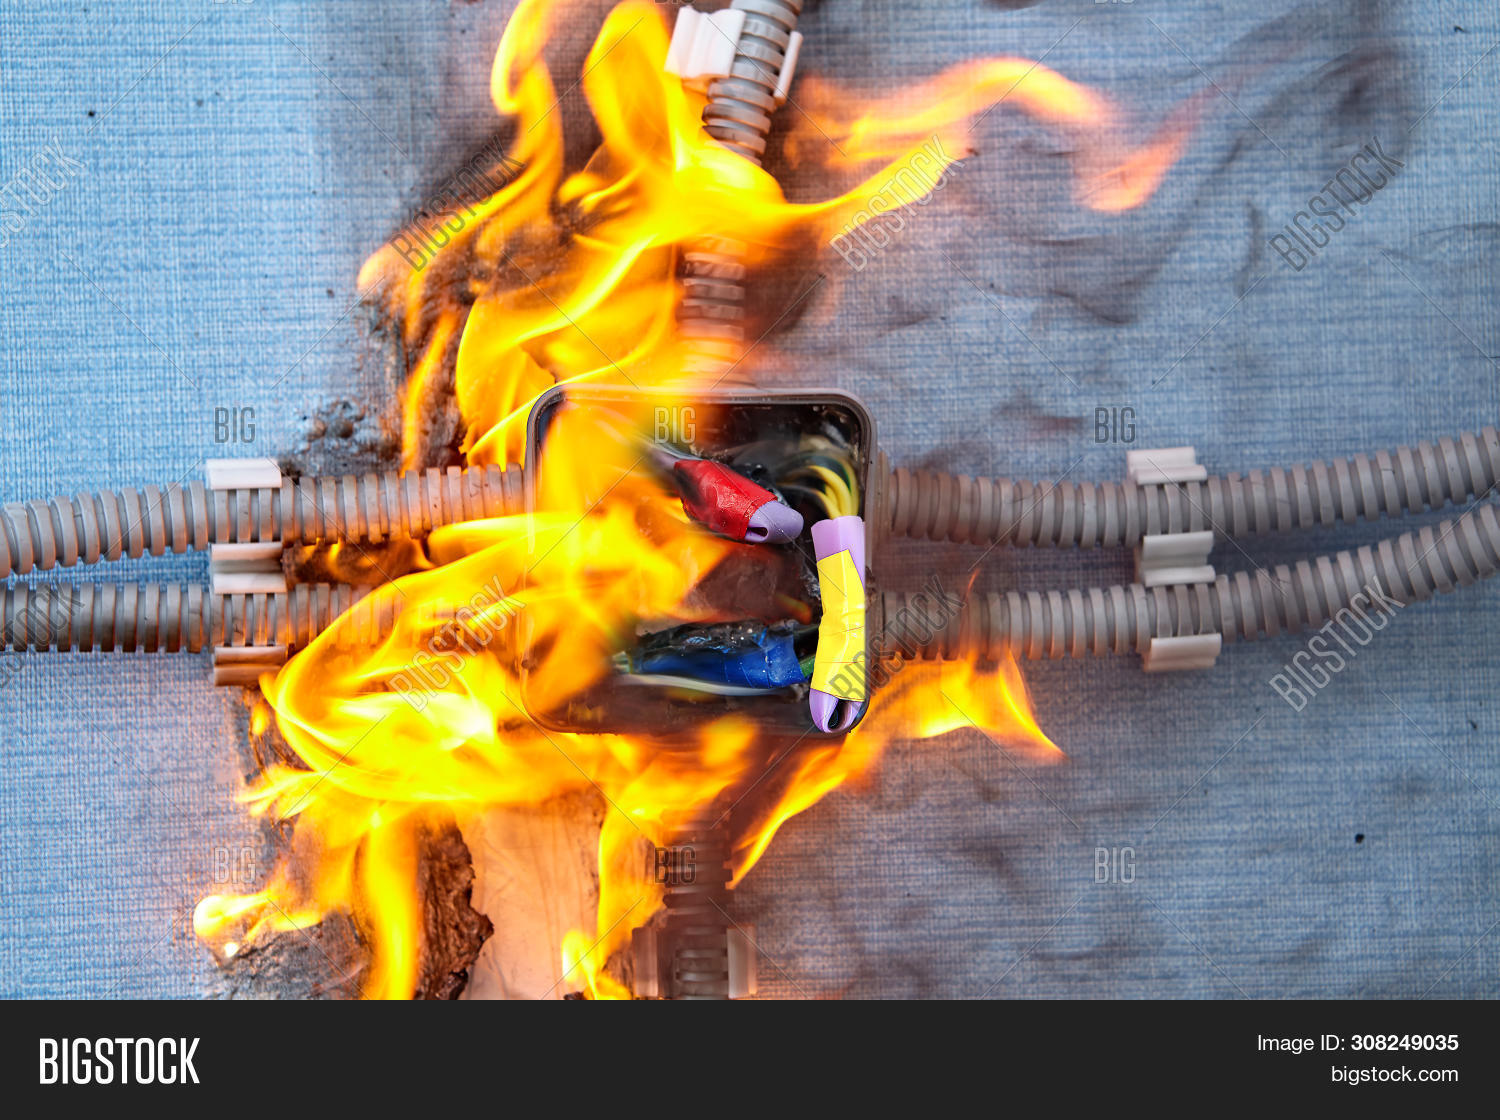 bad,box,broken,burn,burned,burning,burnout,burnt,cable,closeup,combustion,connection,damaged,danger,dangerous,defective,distribution,electric,electrical,electricity,equipment,failure,faulty,fire,flame,hazard,home,house,junction,nobody,overloaded,power,prevention,problem,process,protect,risk,safety,security,smoke,surge,system,voltage,wall,wire,wiring,wrong